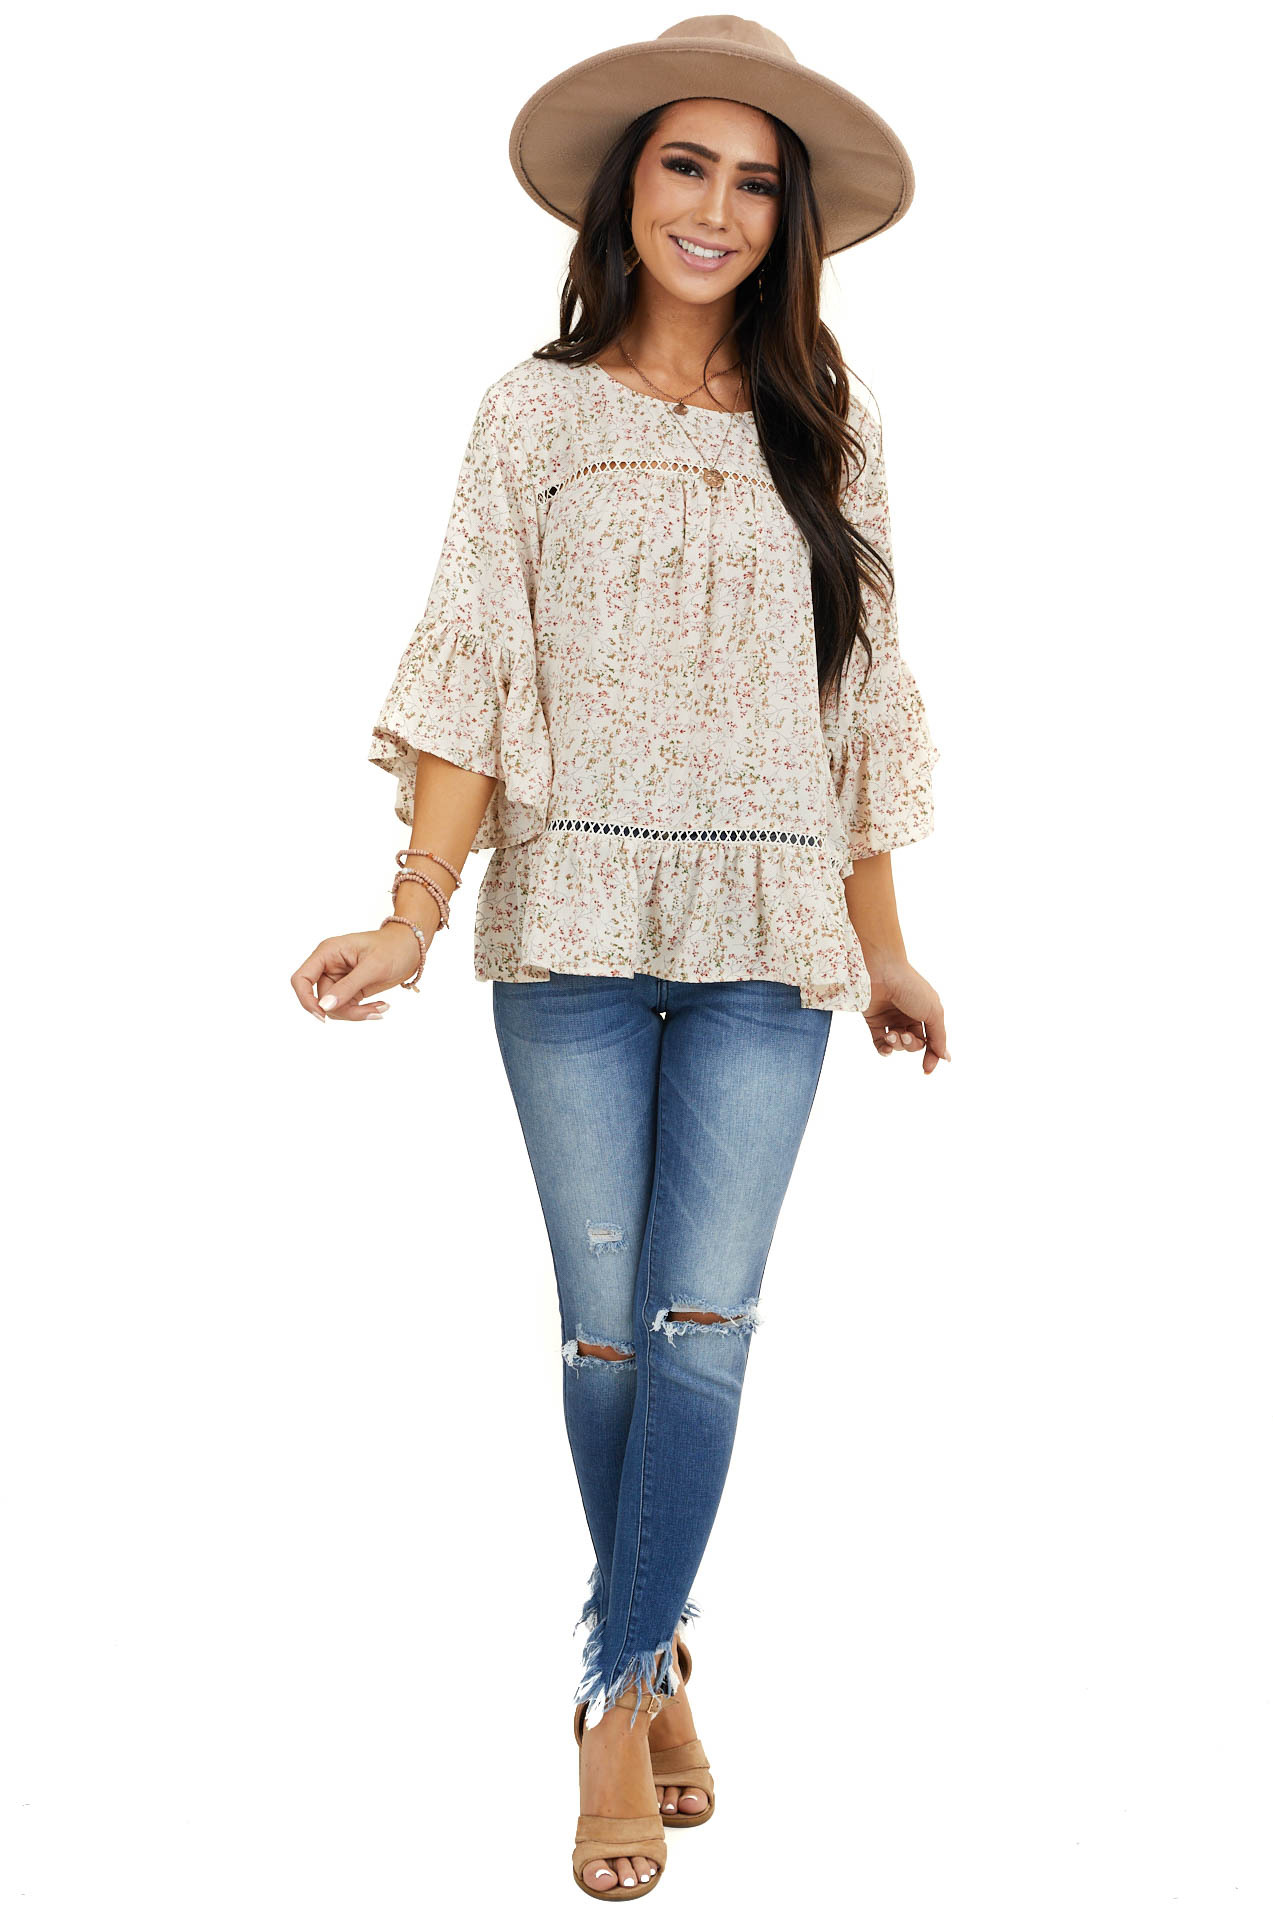 Cream Floral Print 3/4 Length Sleeve Top with Lace Details